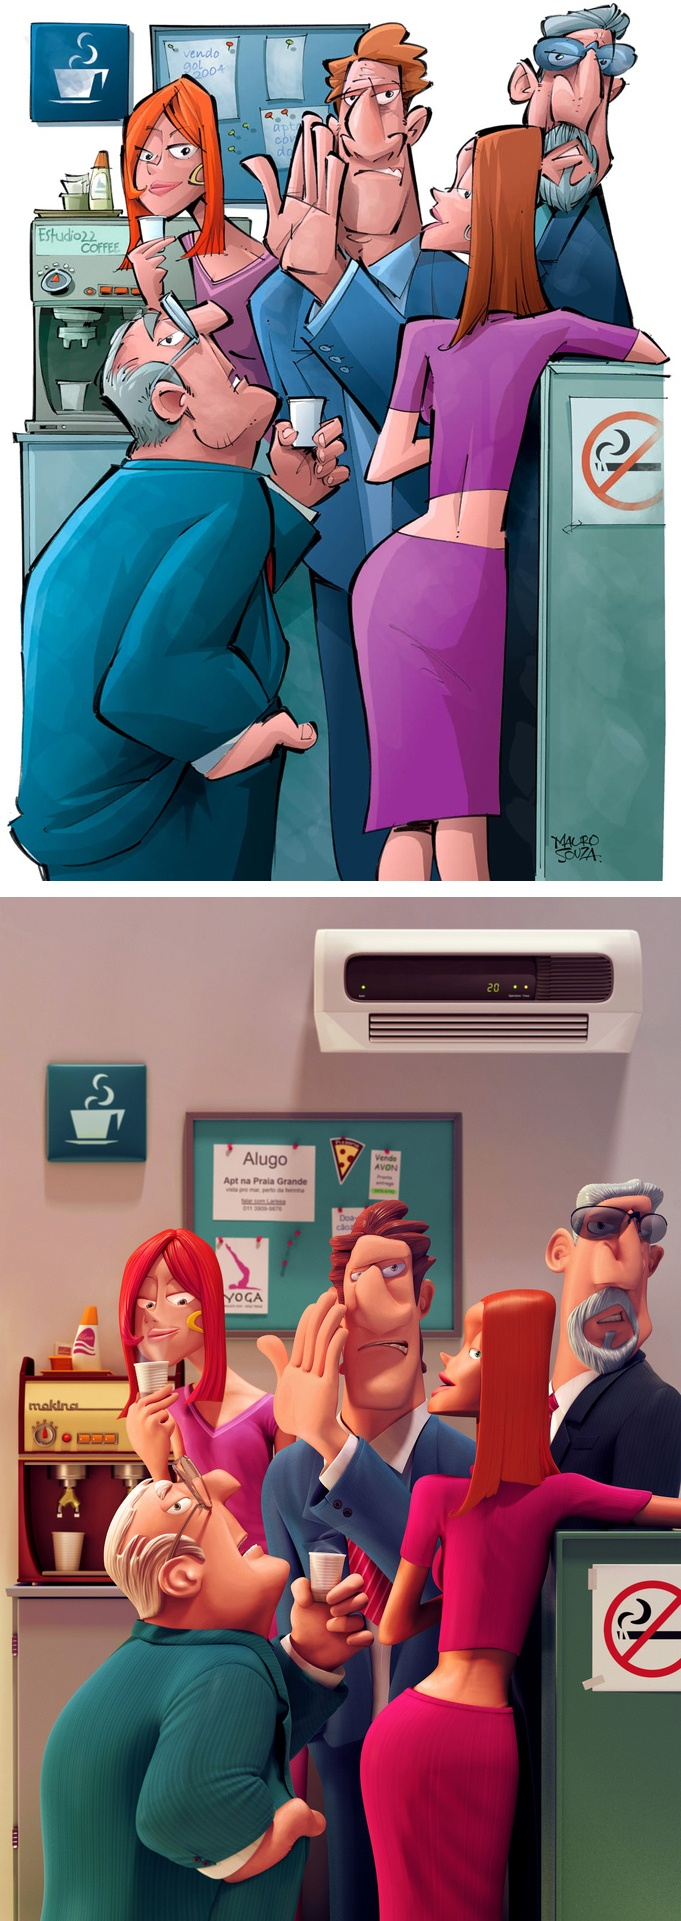 In The Office Illustration - Sounds Familiar?